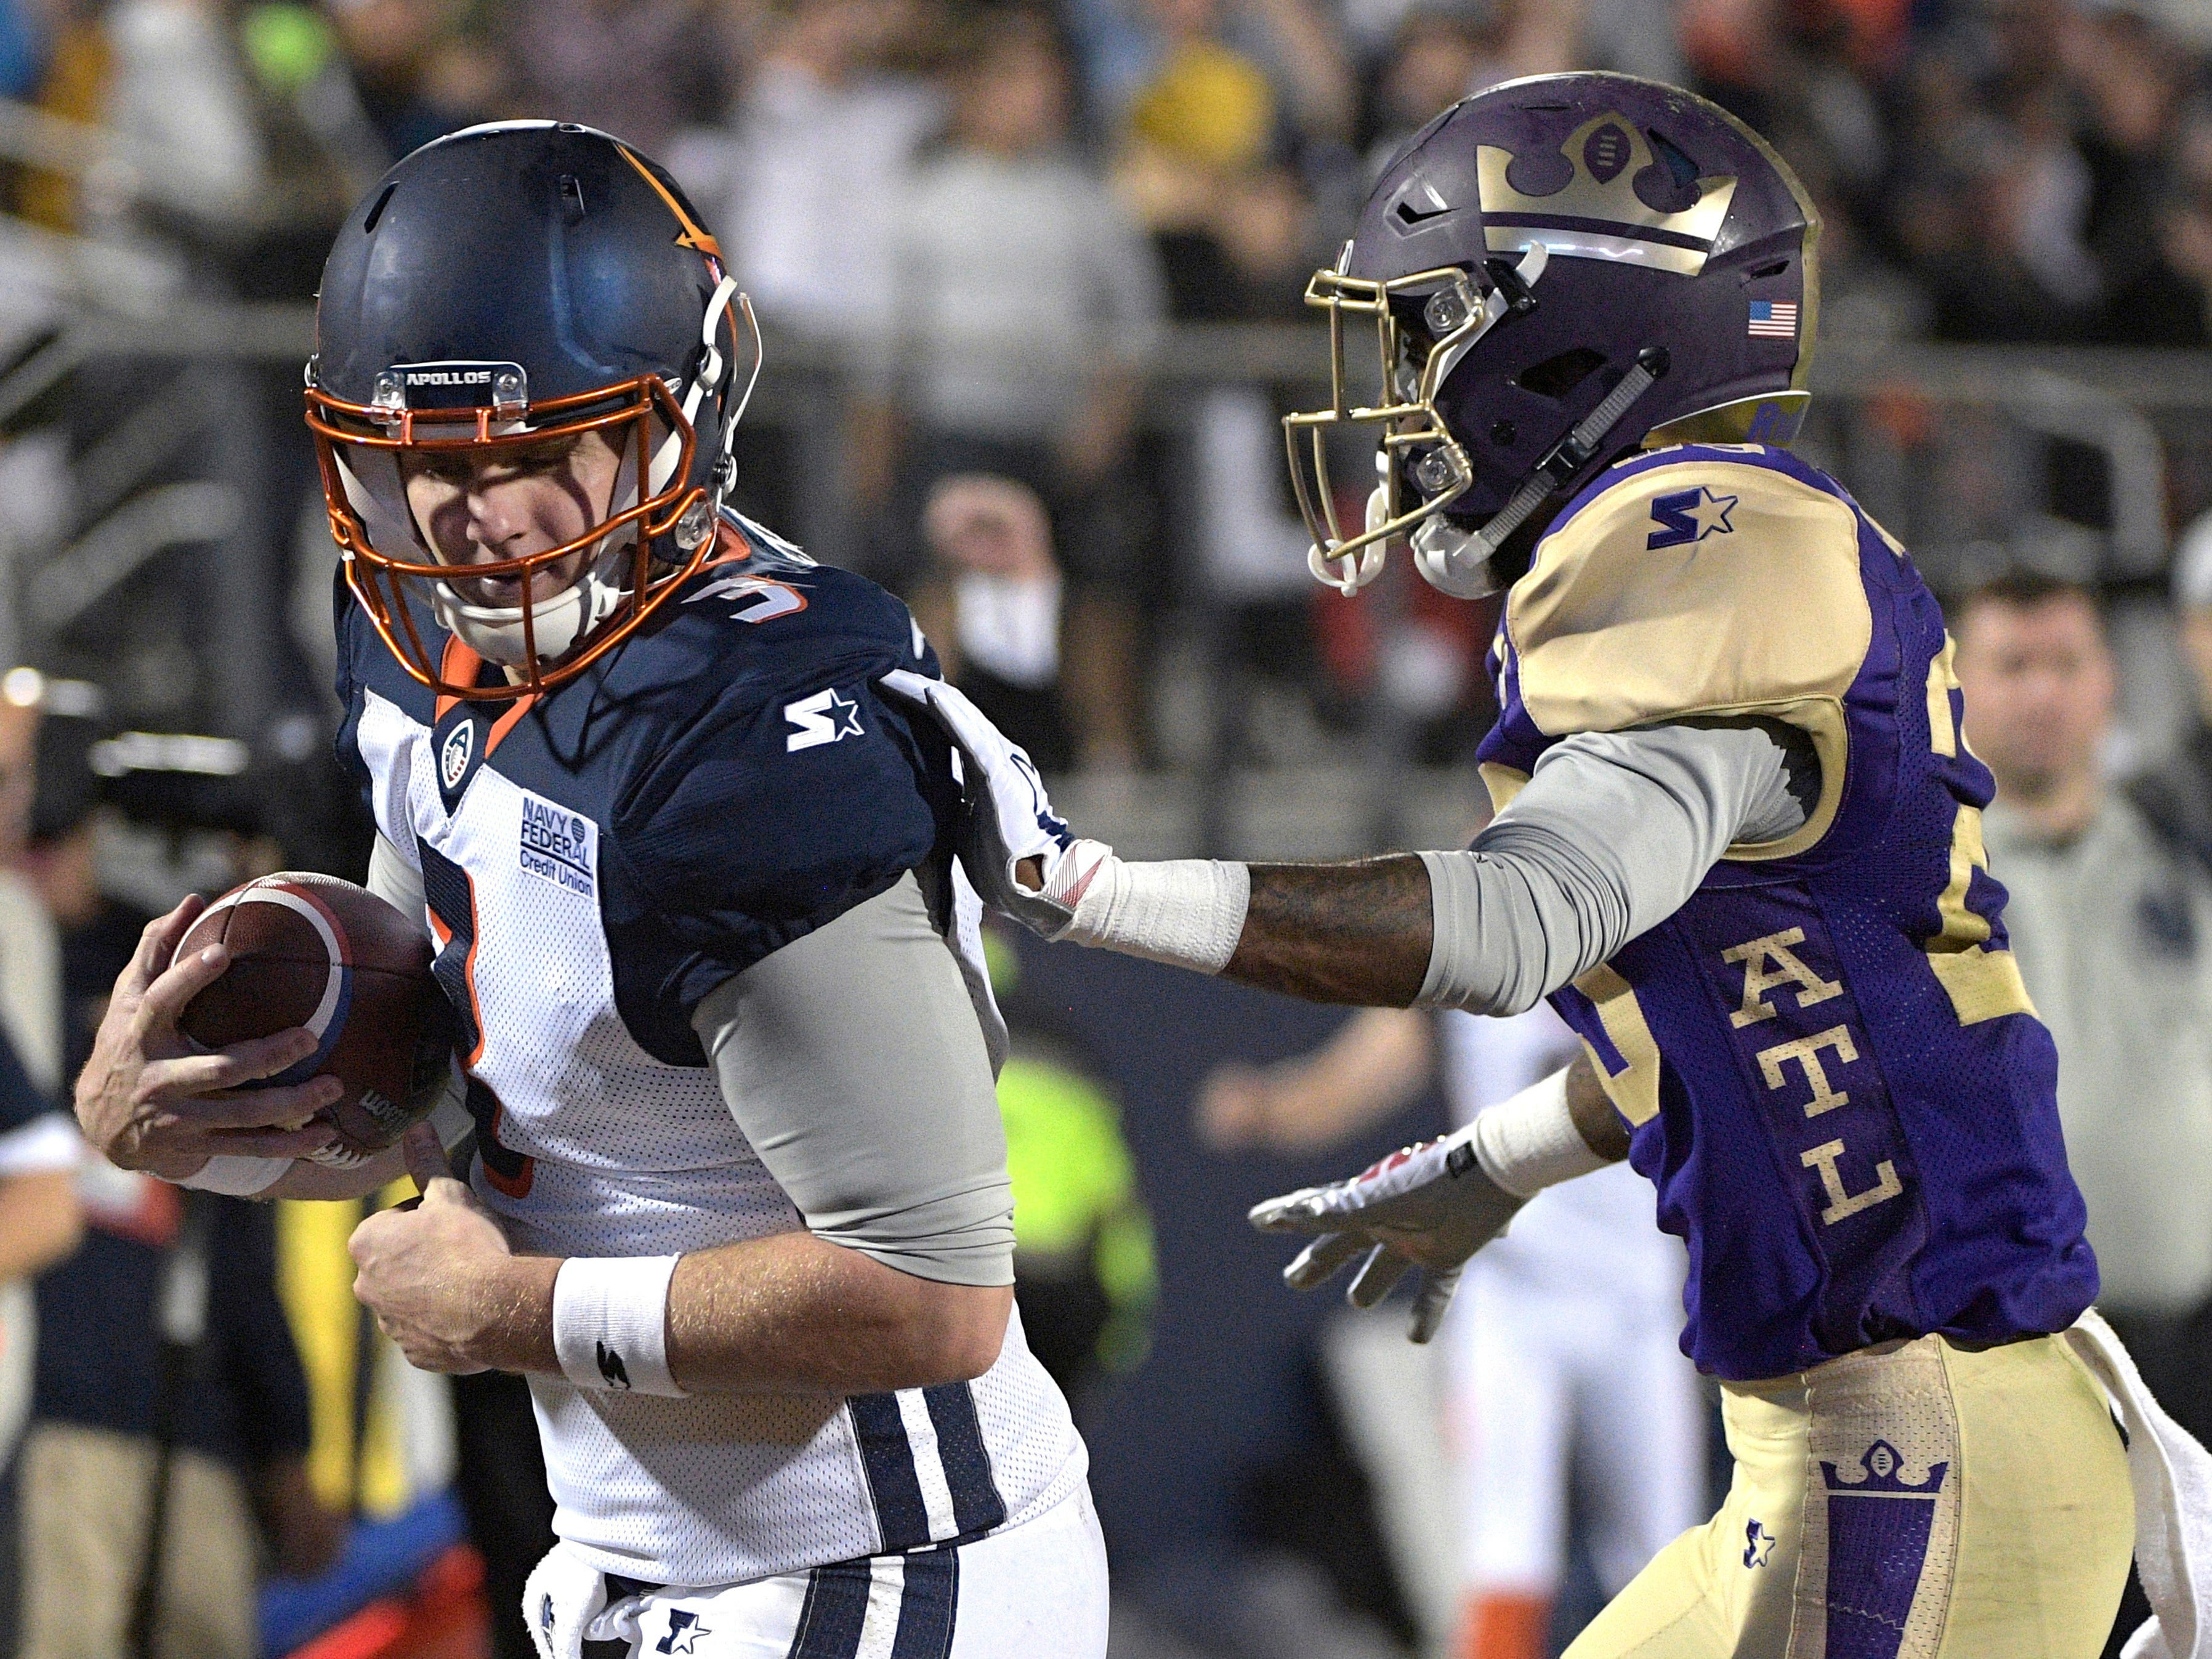 Orlando Apollos quarterback Garrett Gilbert catches a pass from receiver Jalin Marshall for a 5-yard touchdown in front of Atlanta Legends defensive back Damian Swann.